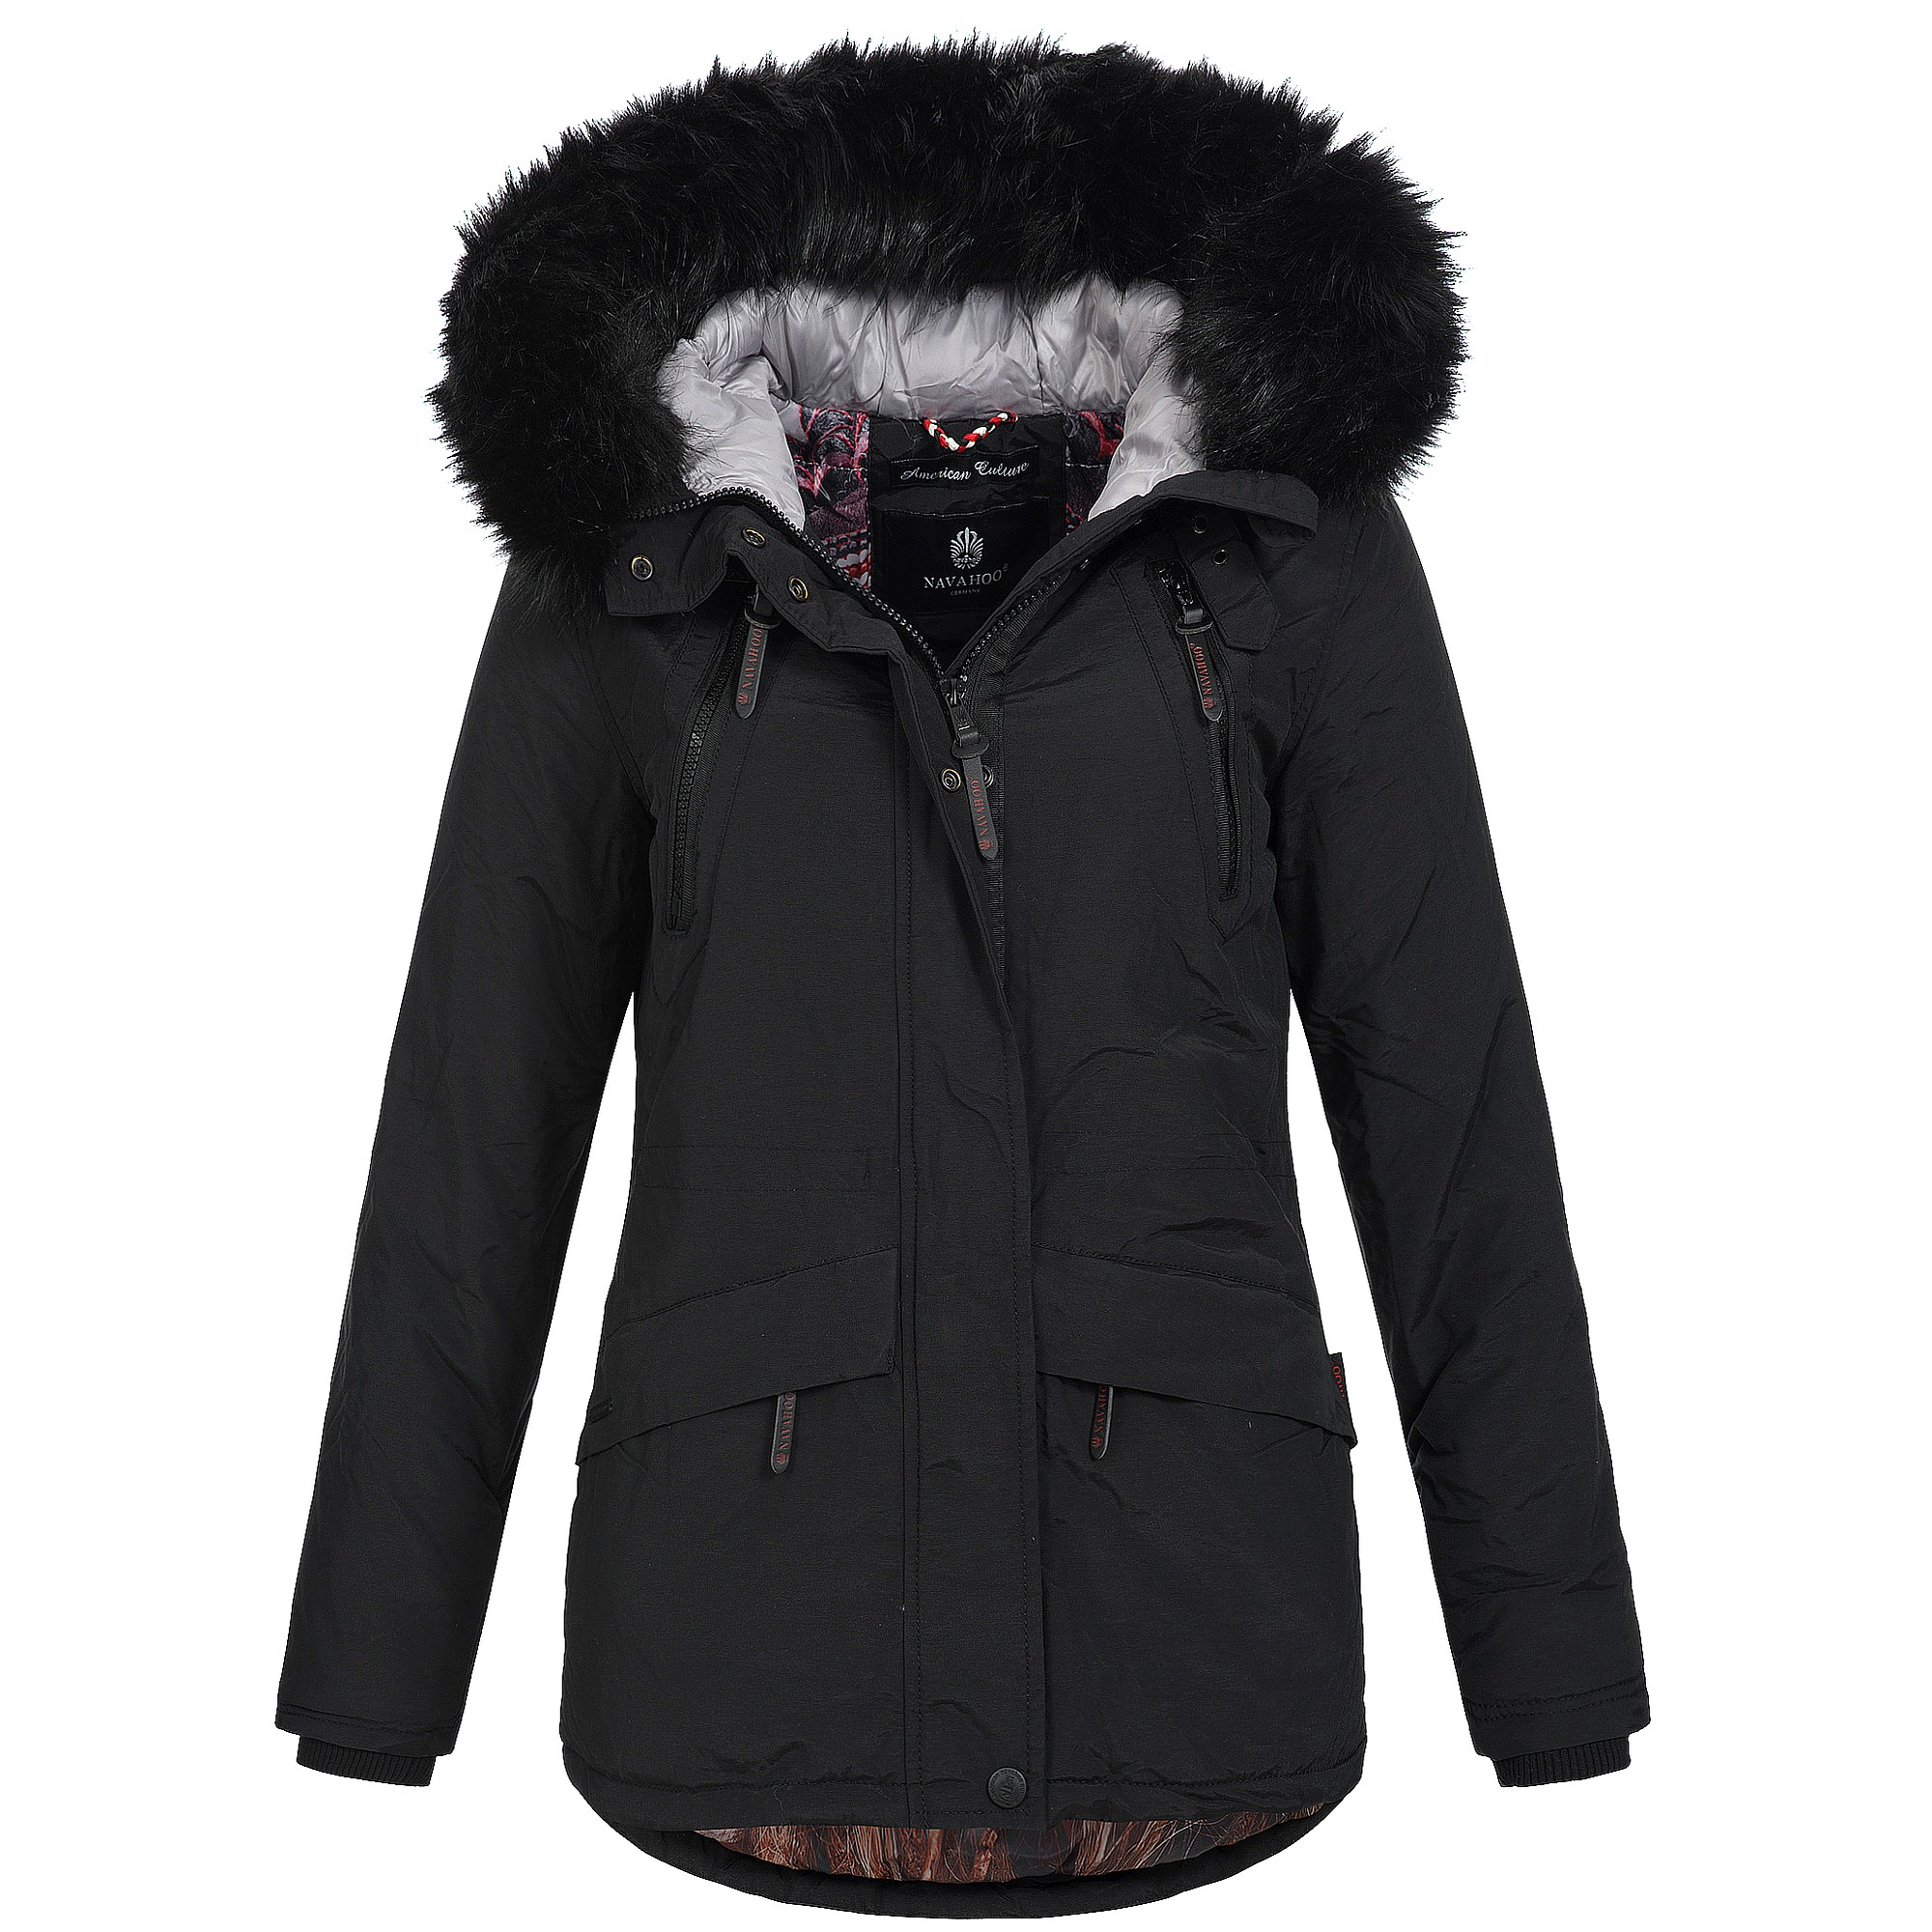 navahoo alisia damen jacke mantel winterjacke warm parka fell warm xs xxl ebay. Black Bedroom Furniture Sets. Home Design Ideas